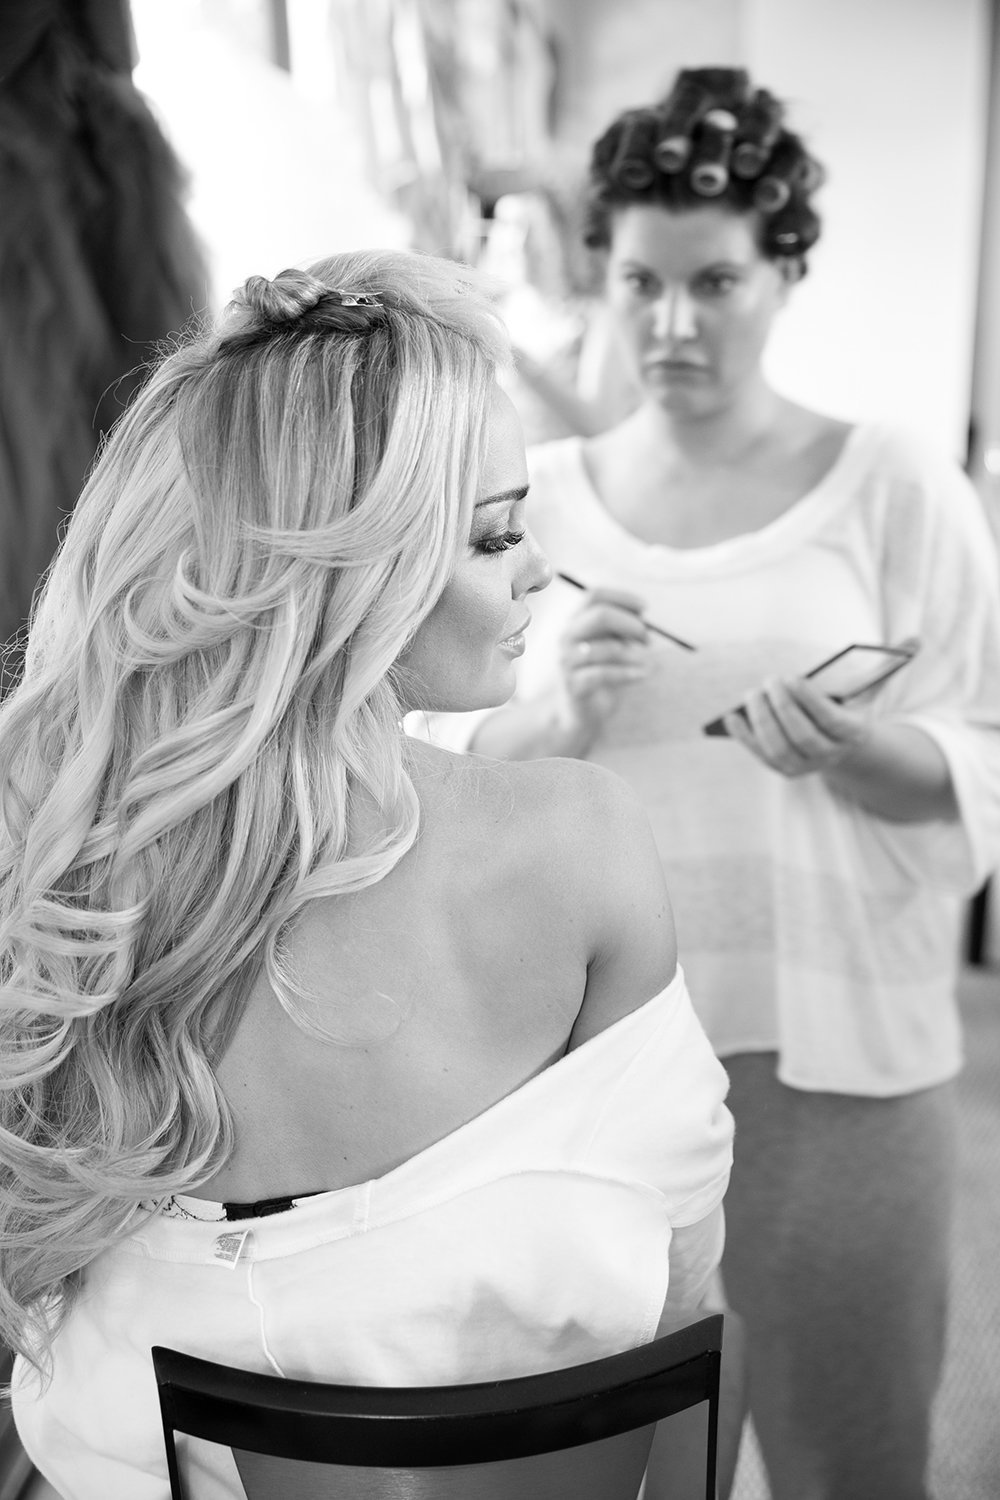 Lovely black and white moment while bride is getting ready